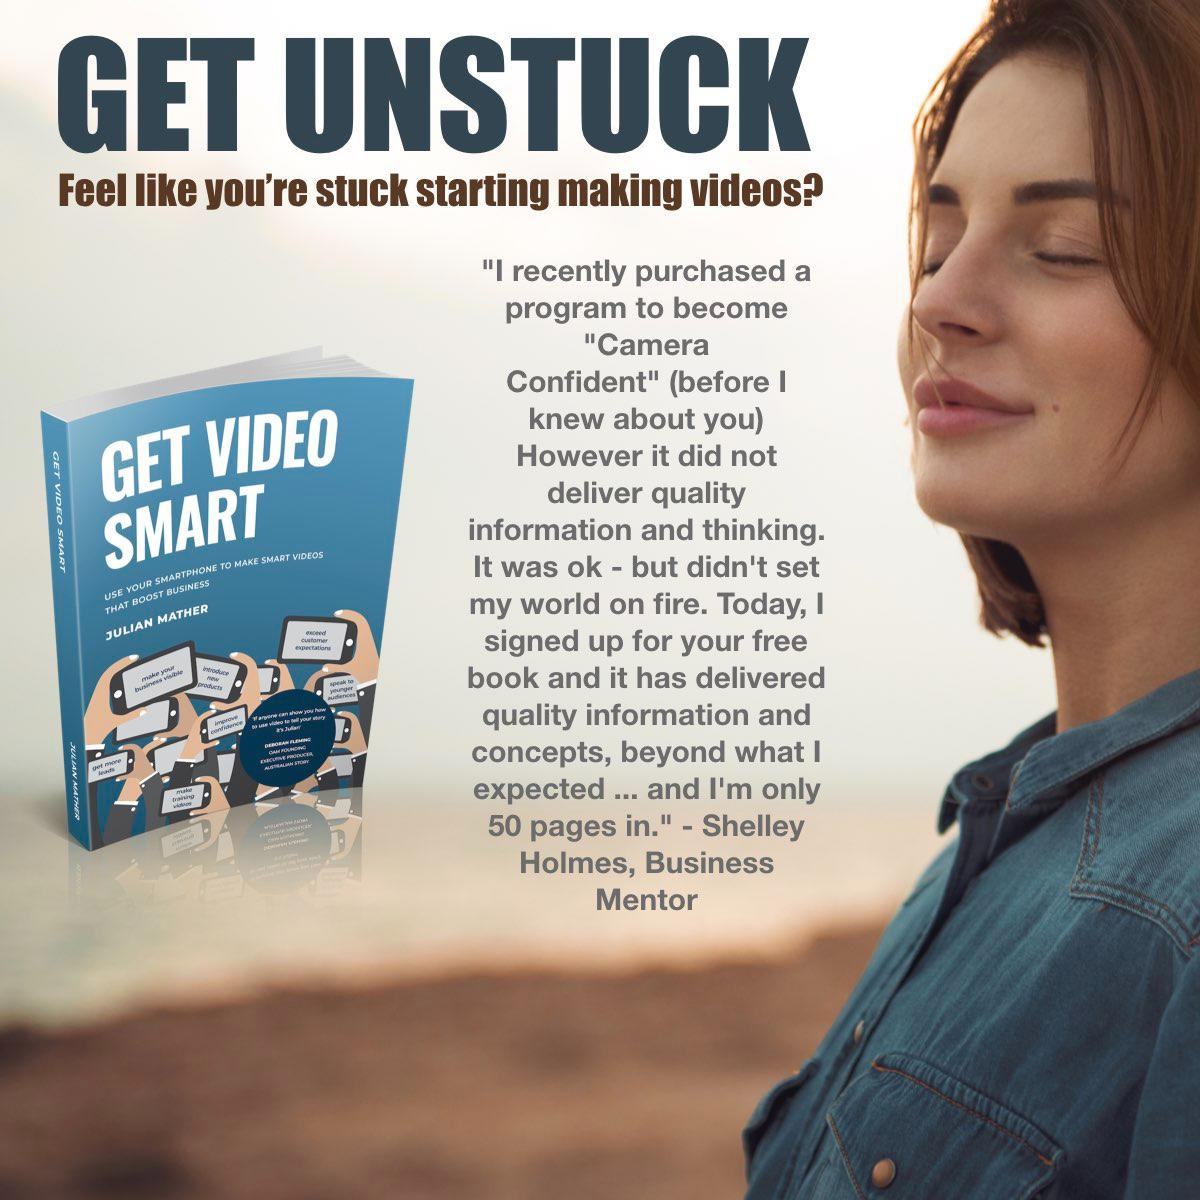 If you feel stuck starting making powerful videos for your business then Julian Mather's Get Video Smart book will get you unstuck.